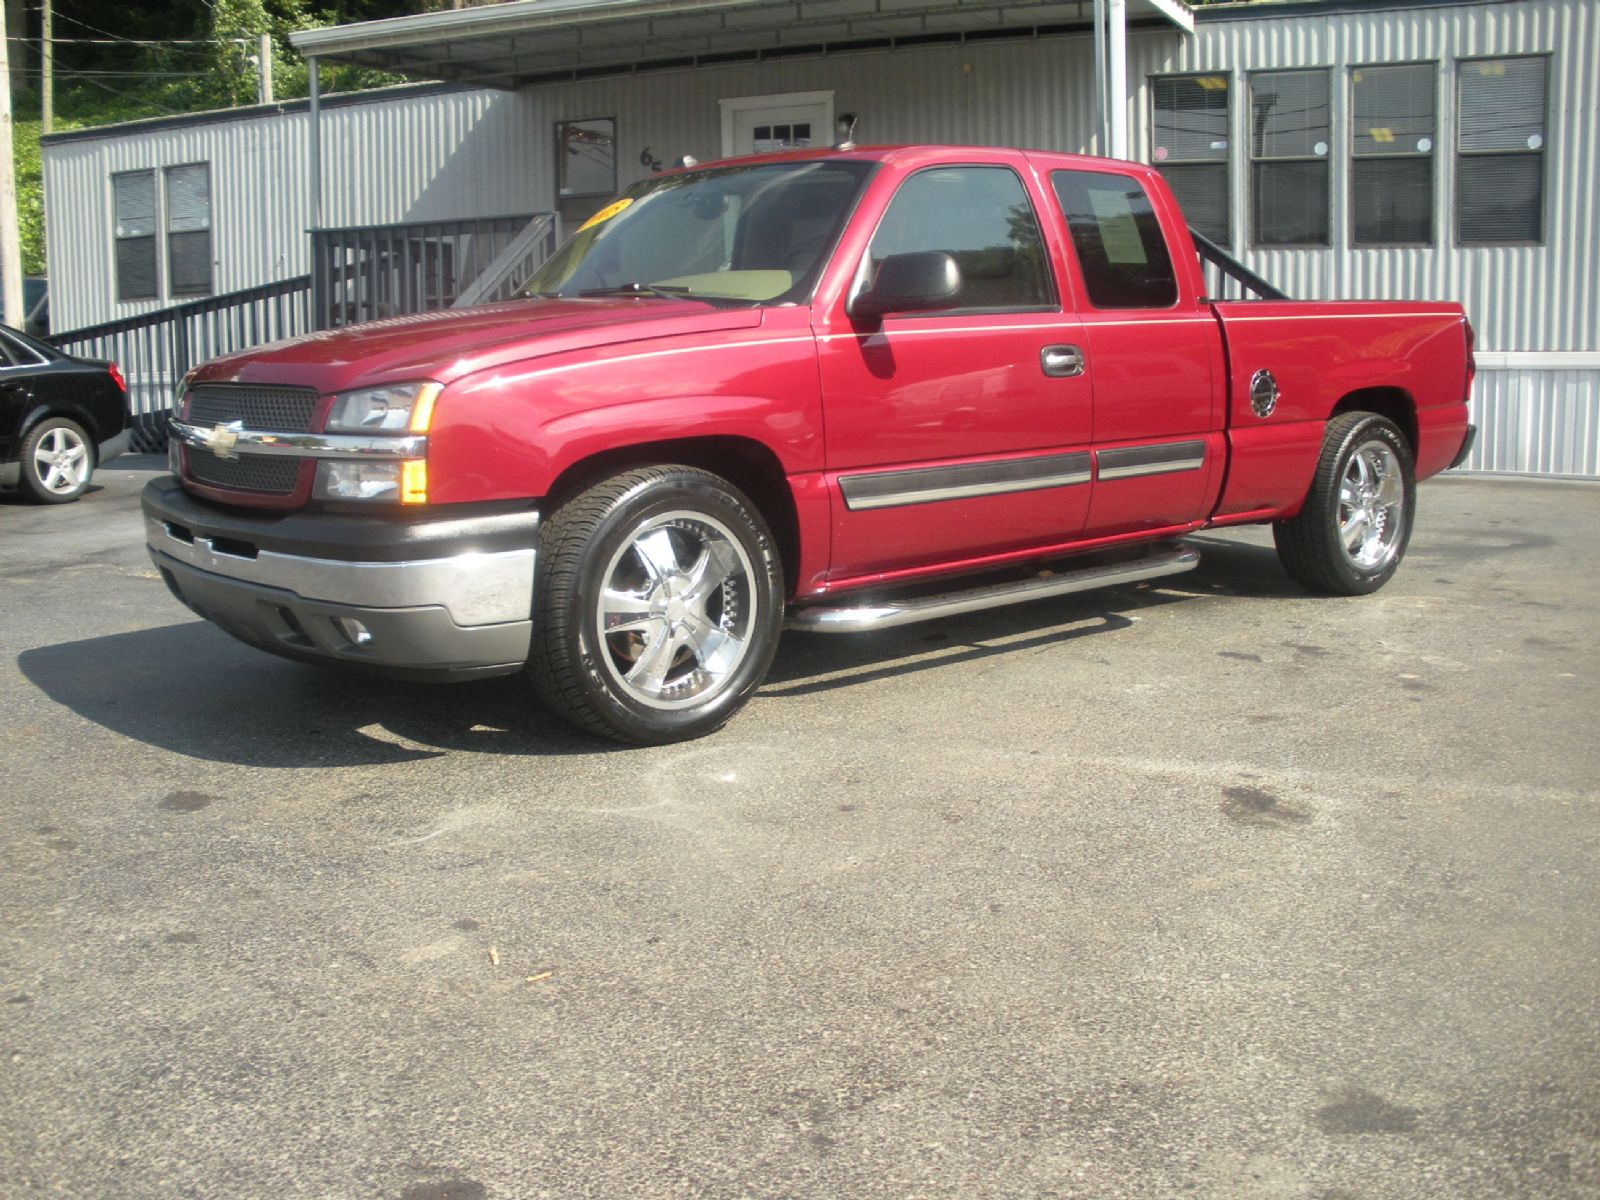 2005 Silverado For Sale >> 2005 Chevrolet Supercharged Silverado Ss For Sale Knoxville